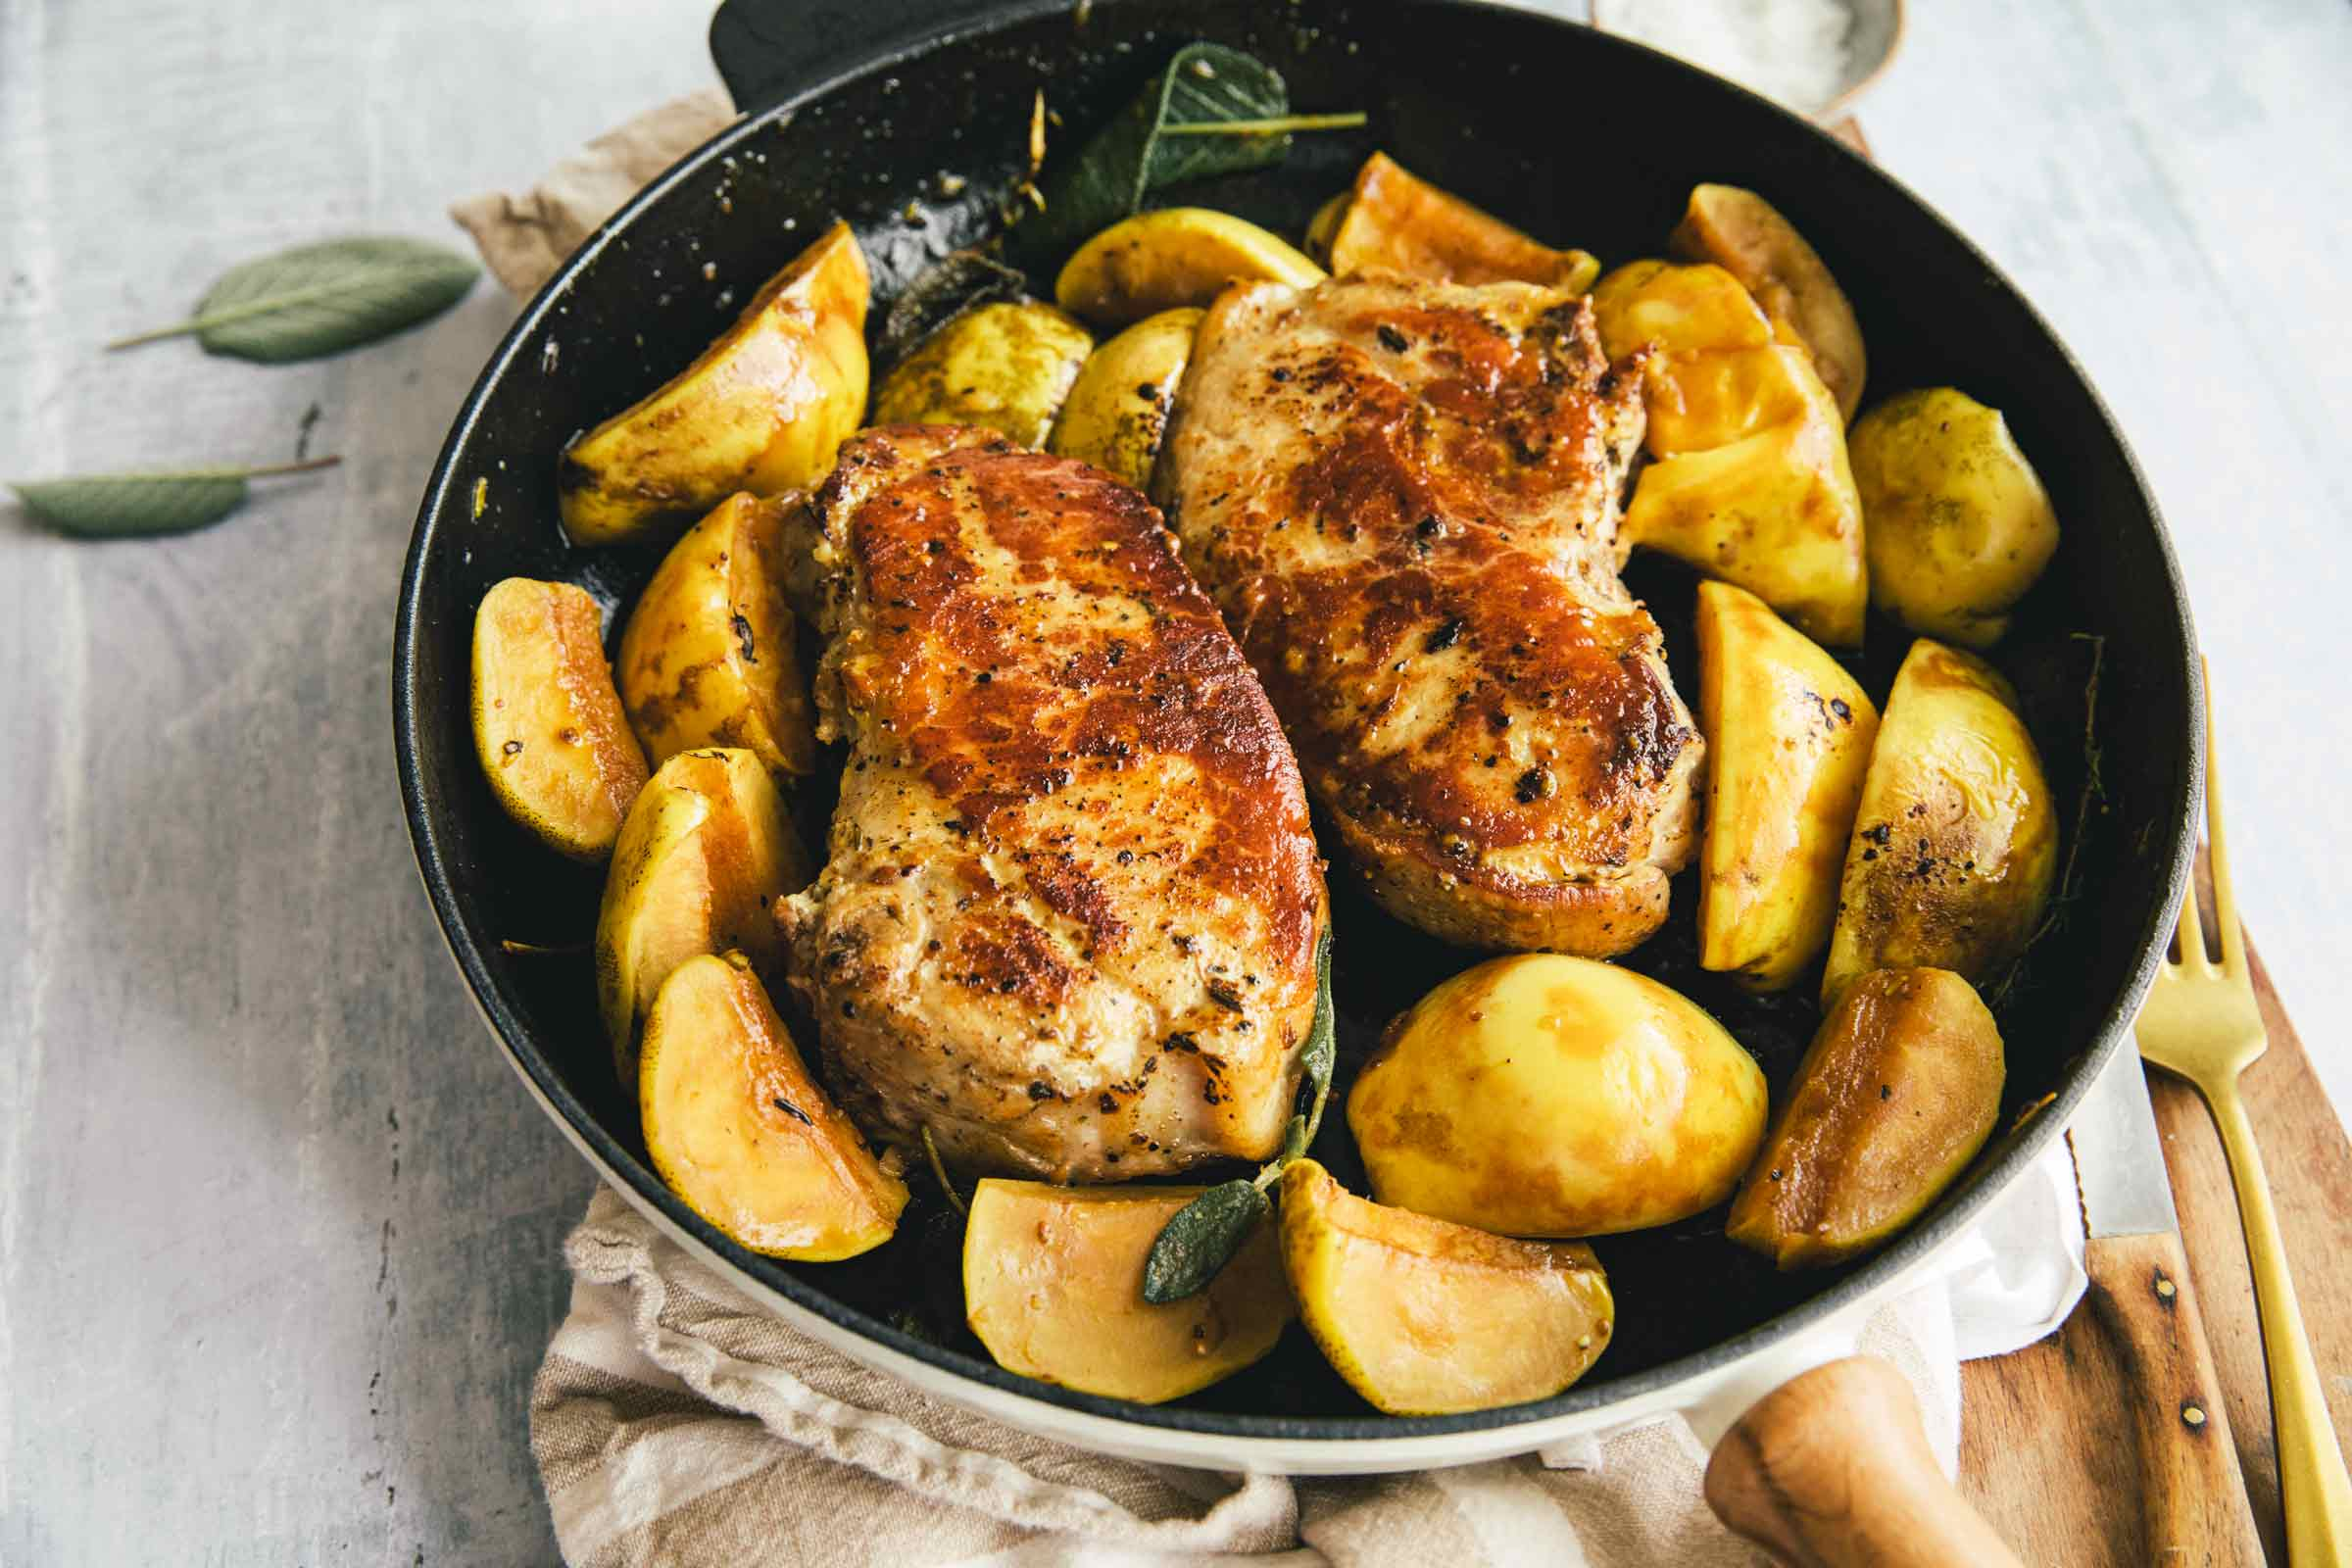 pork chop with quince recipe Pork chops with apples, quince and sage